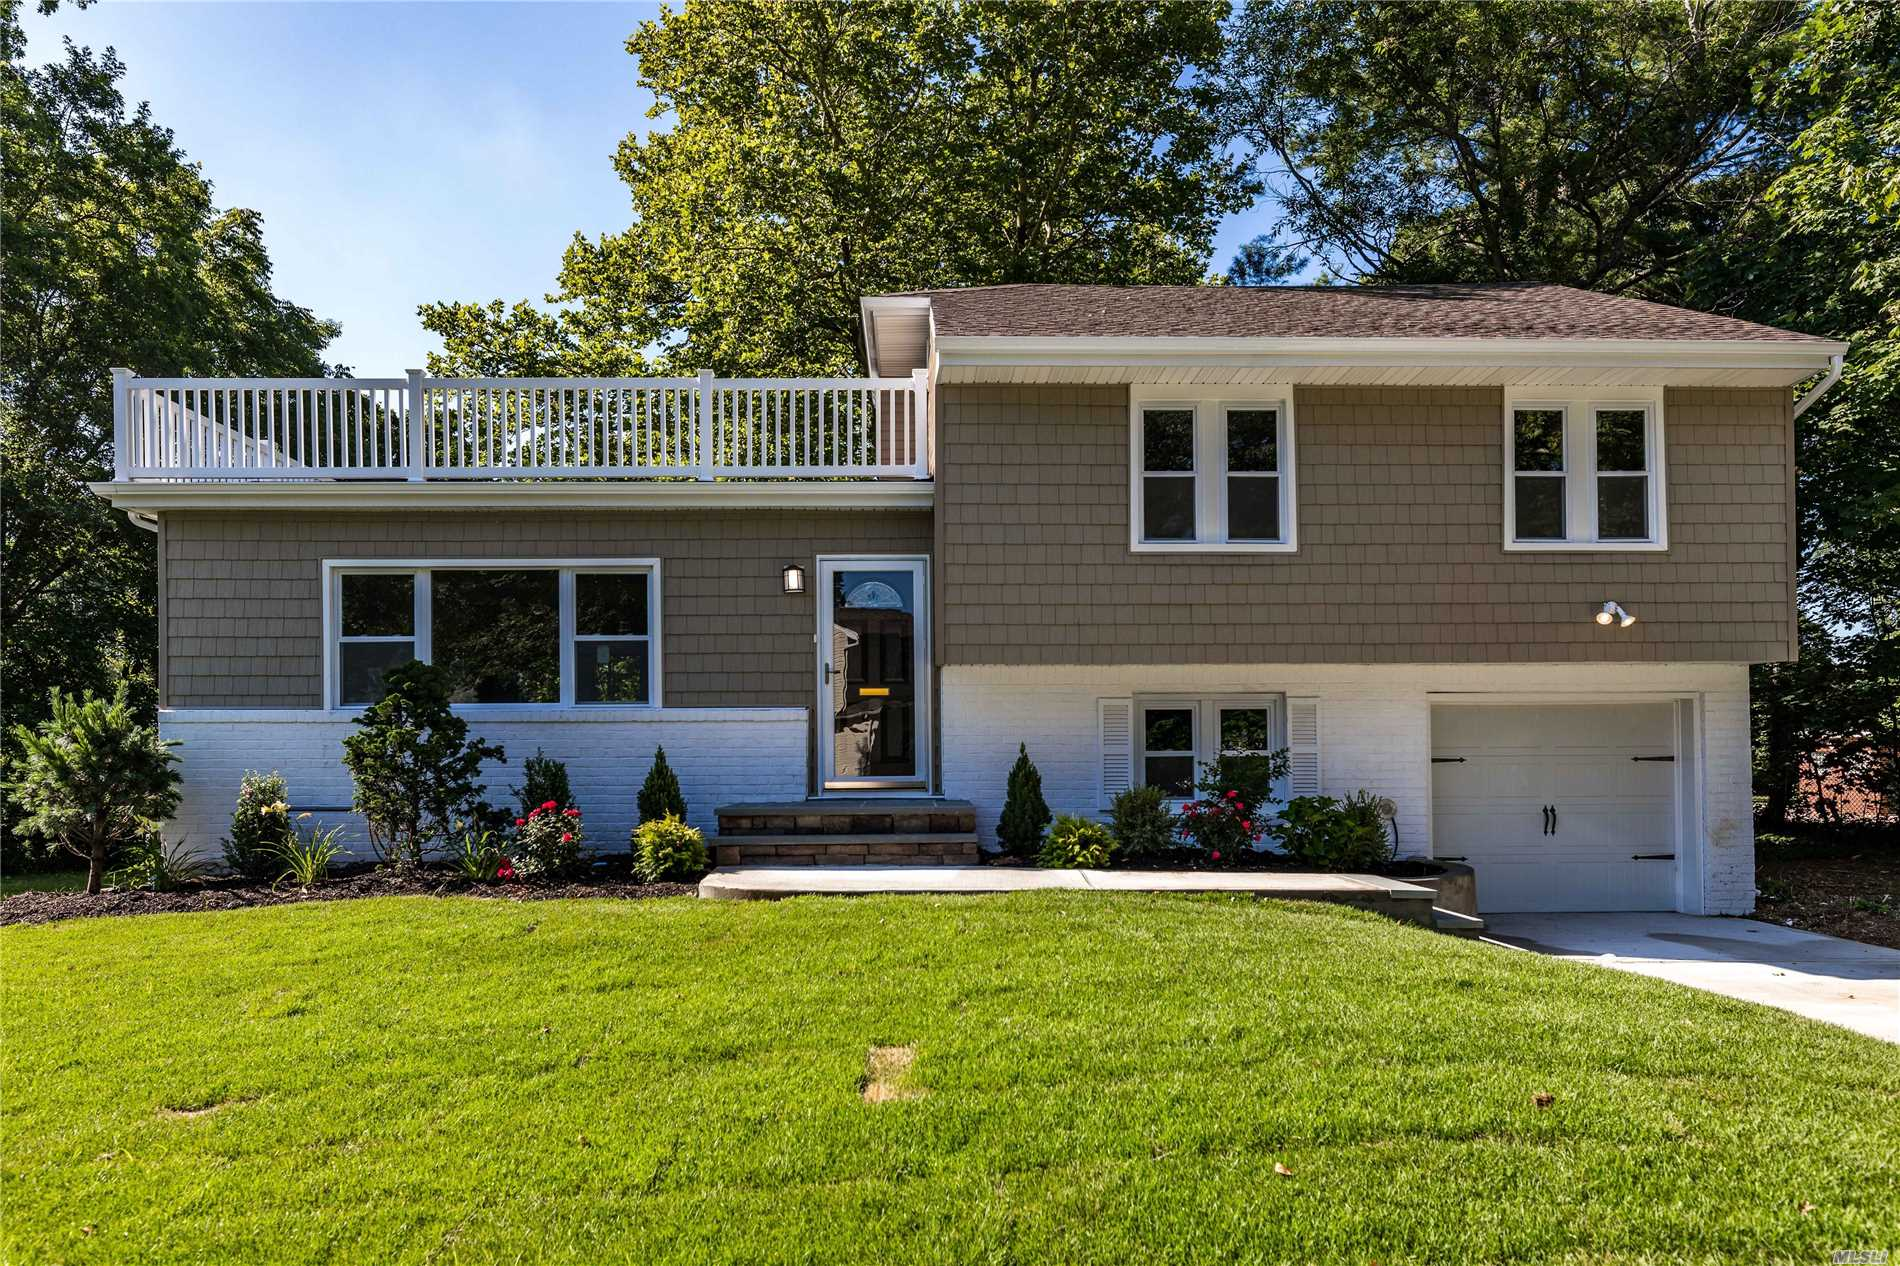 17 Frances Dr - Westbury, New York